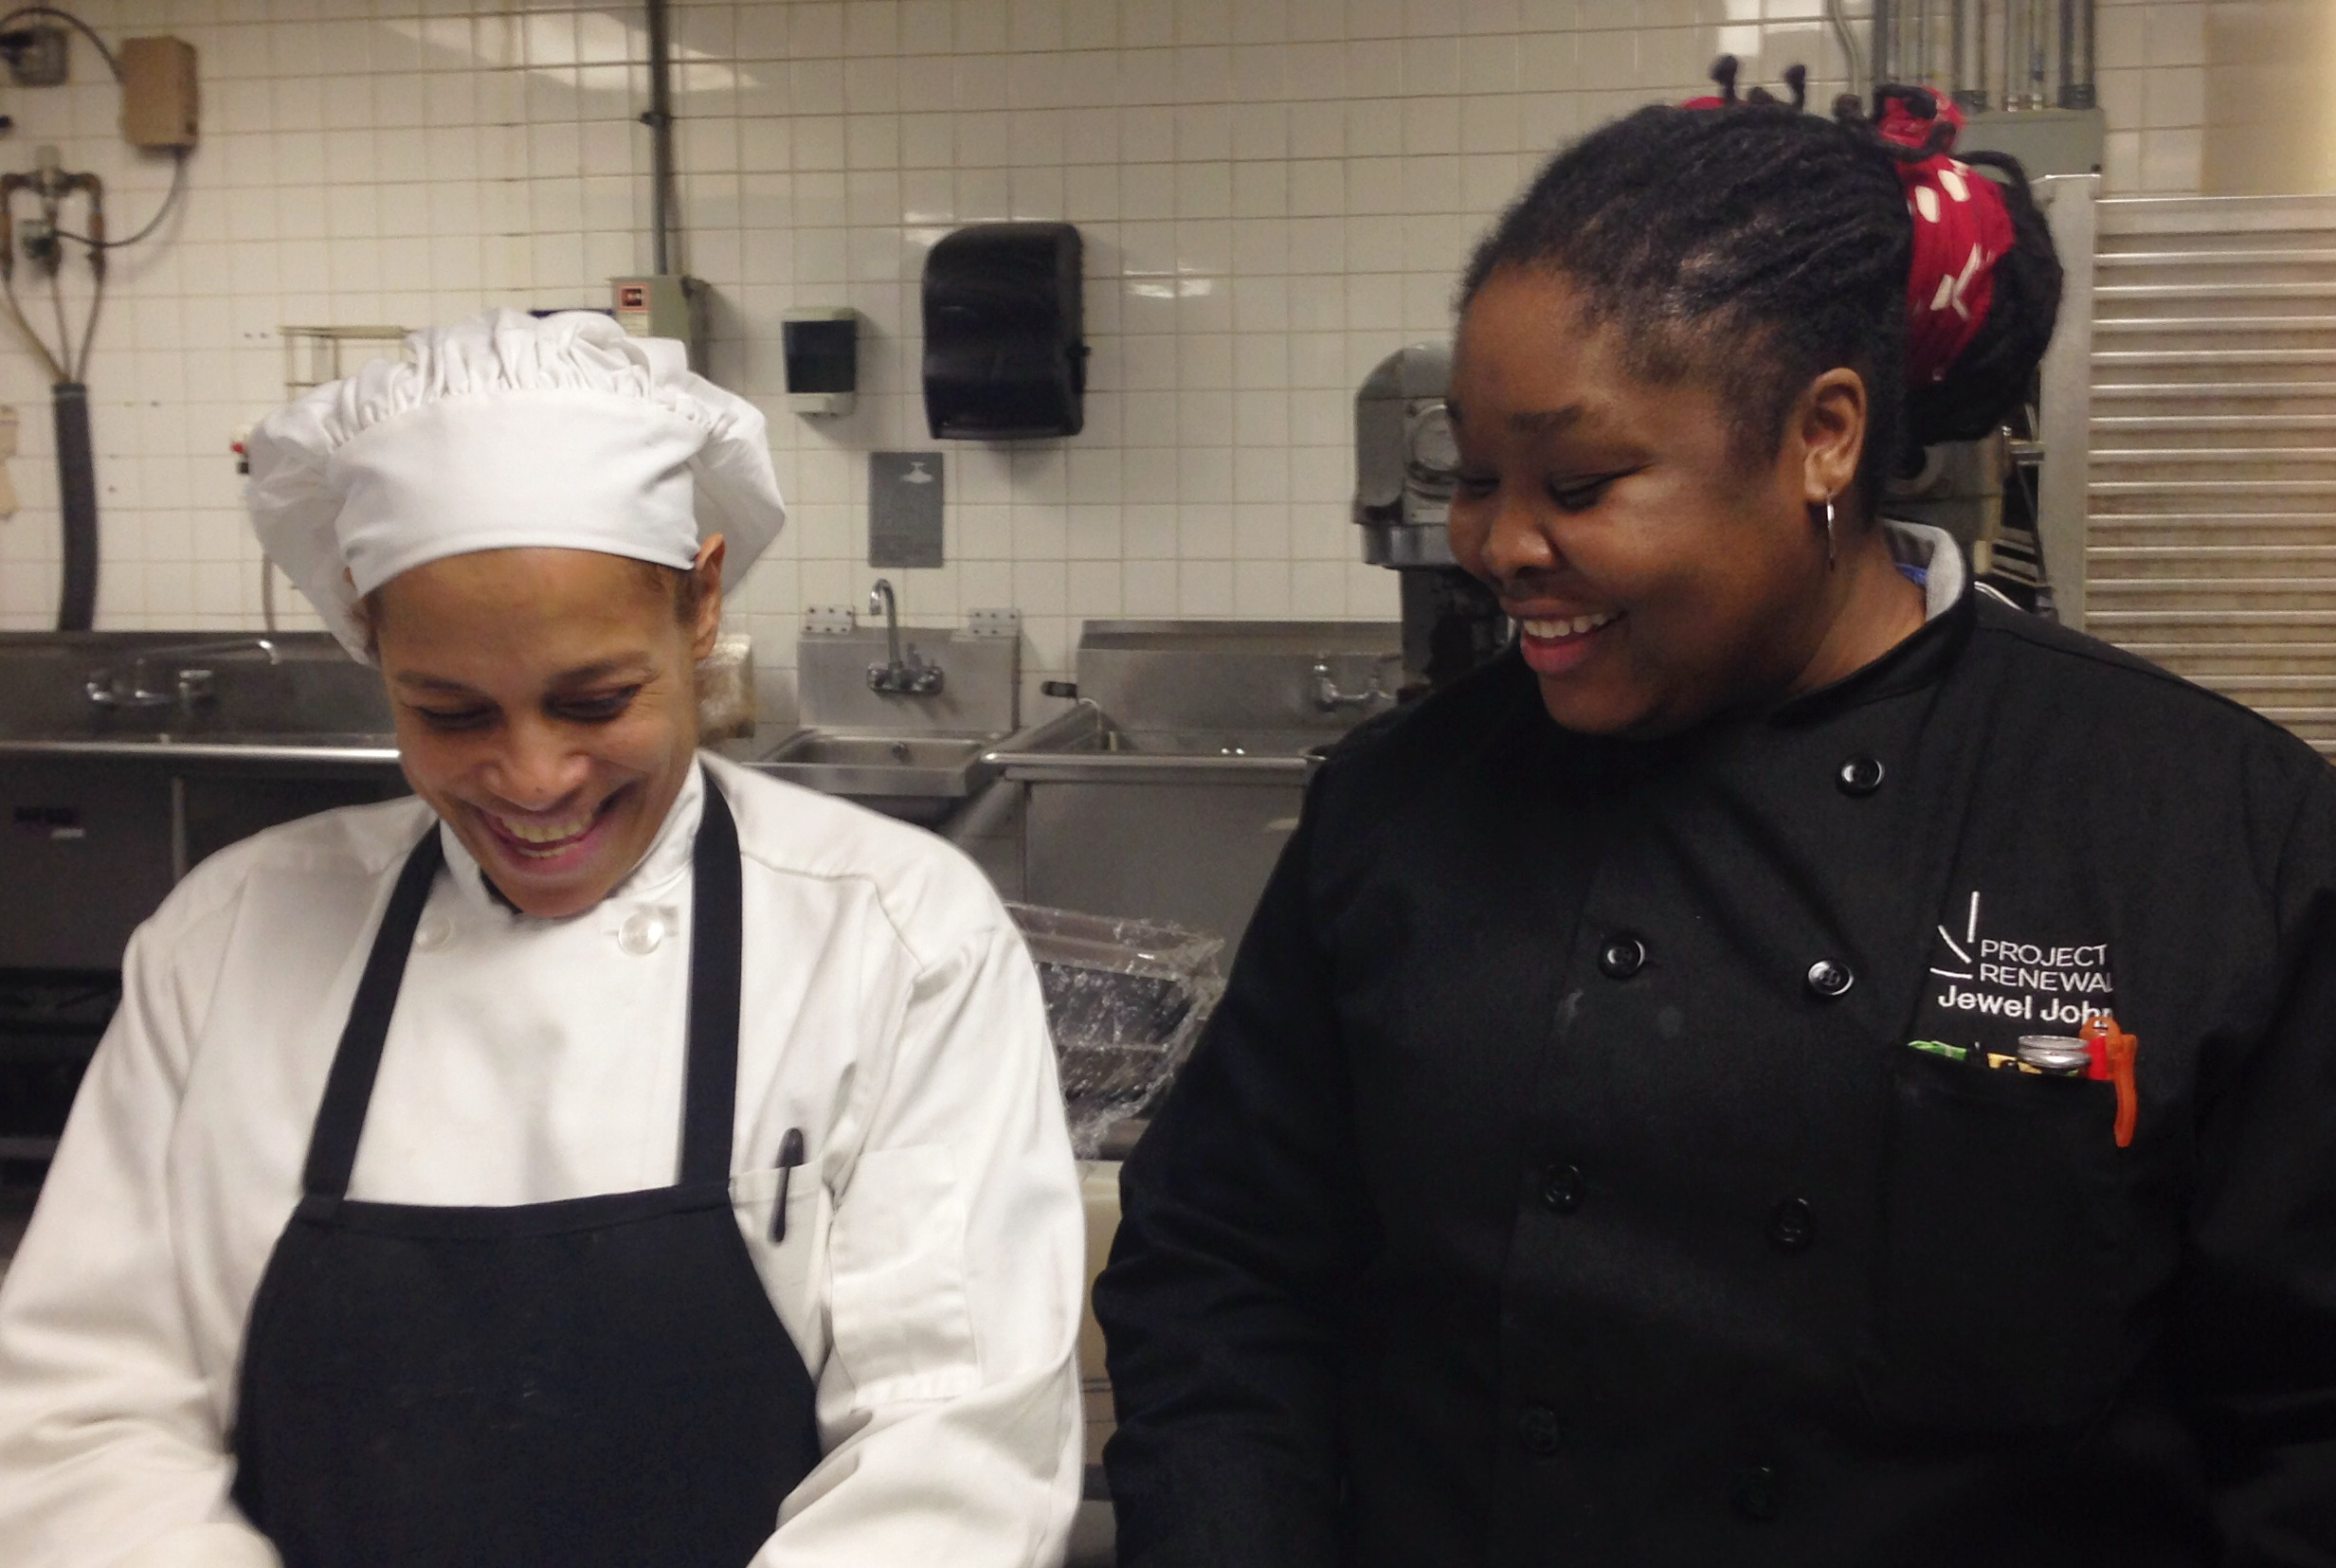 Jewel at right with CATP student Marisol working during class